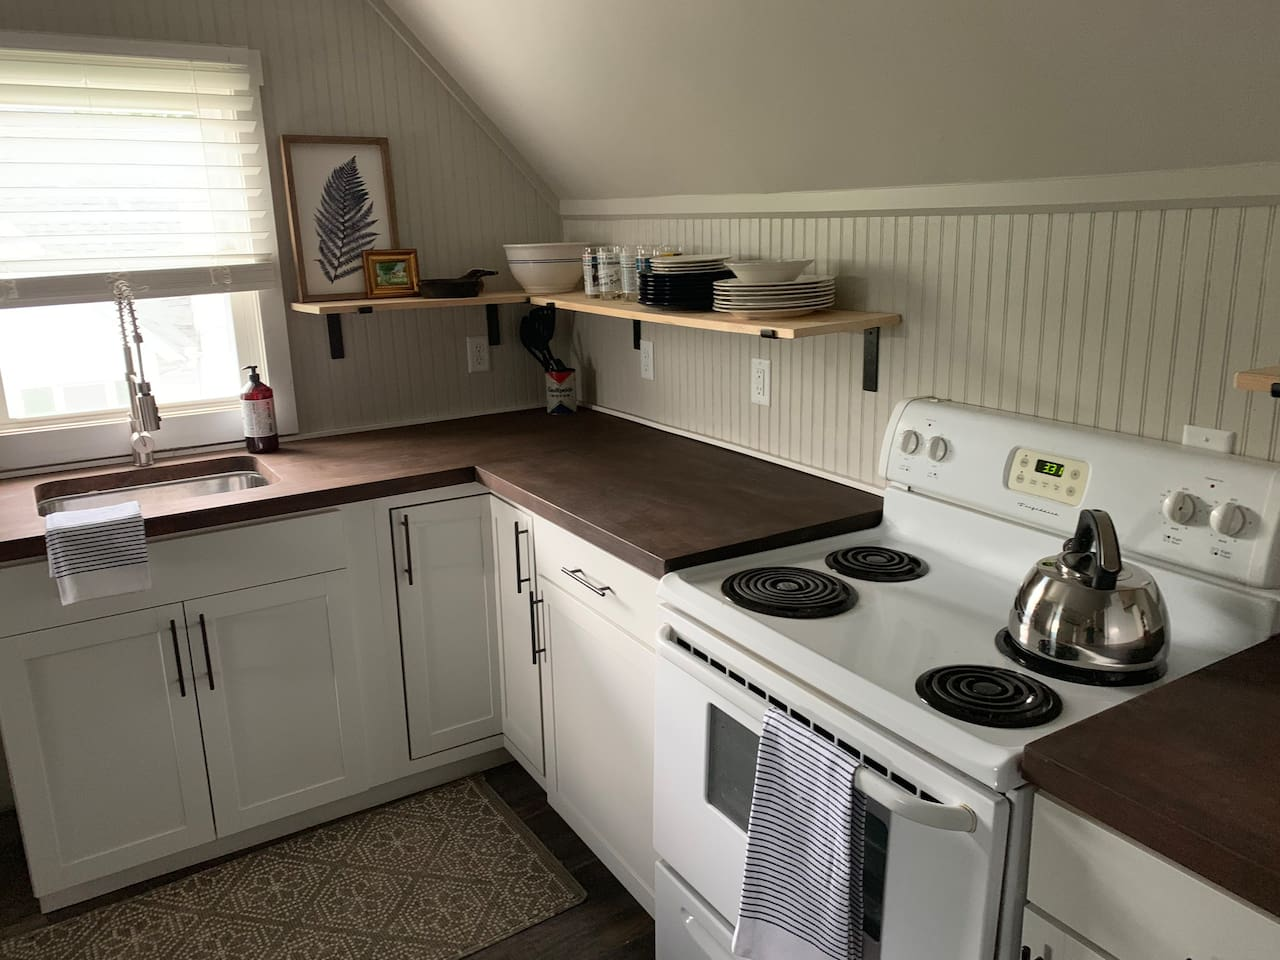 Kitchen with stove, fridge, dishwasher, microwave, washer and dryer. We have a coffee pot with coffee along with dishes and pots and pans to cook with. Eat in or take a short walk to an excellent coffee shop and pizza place!